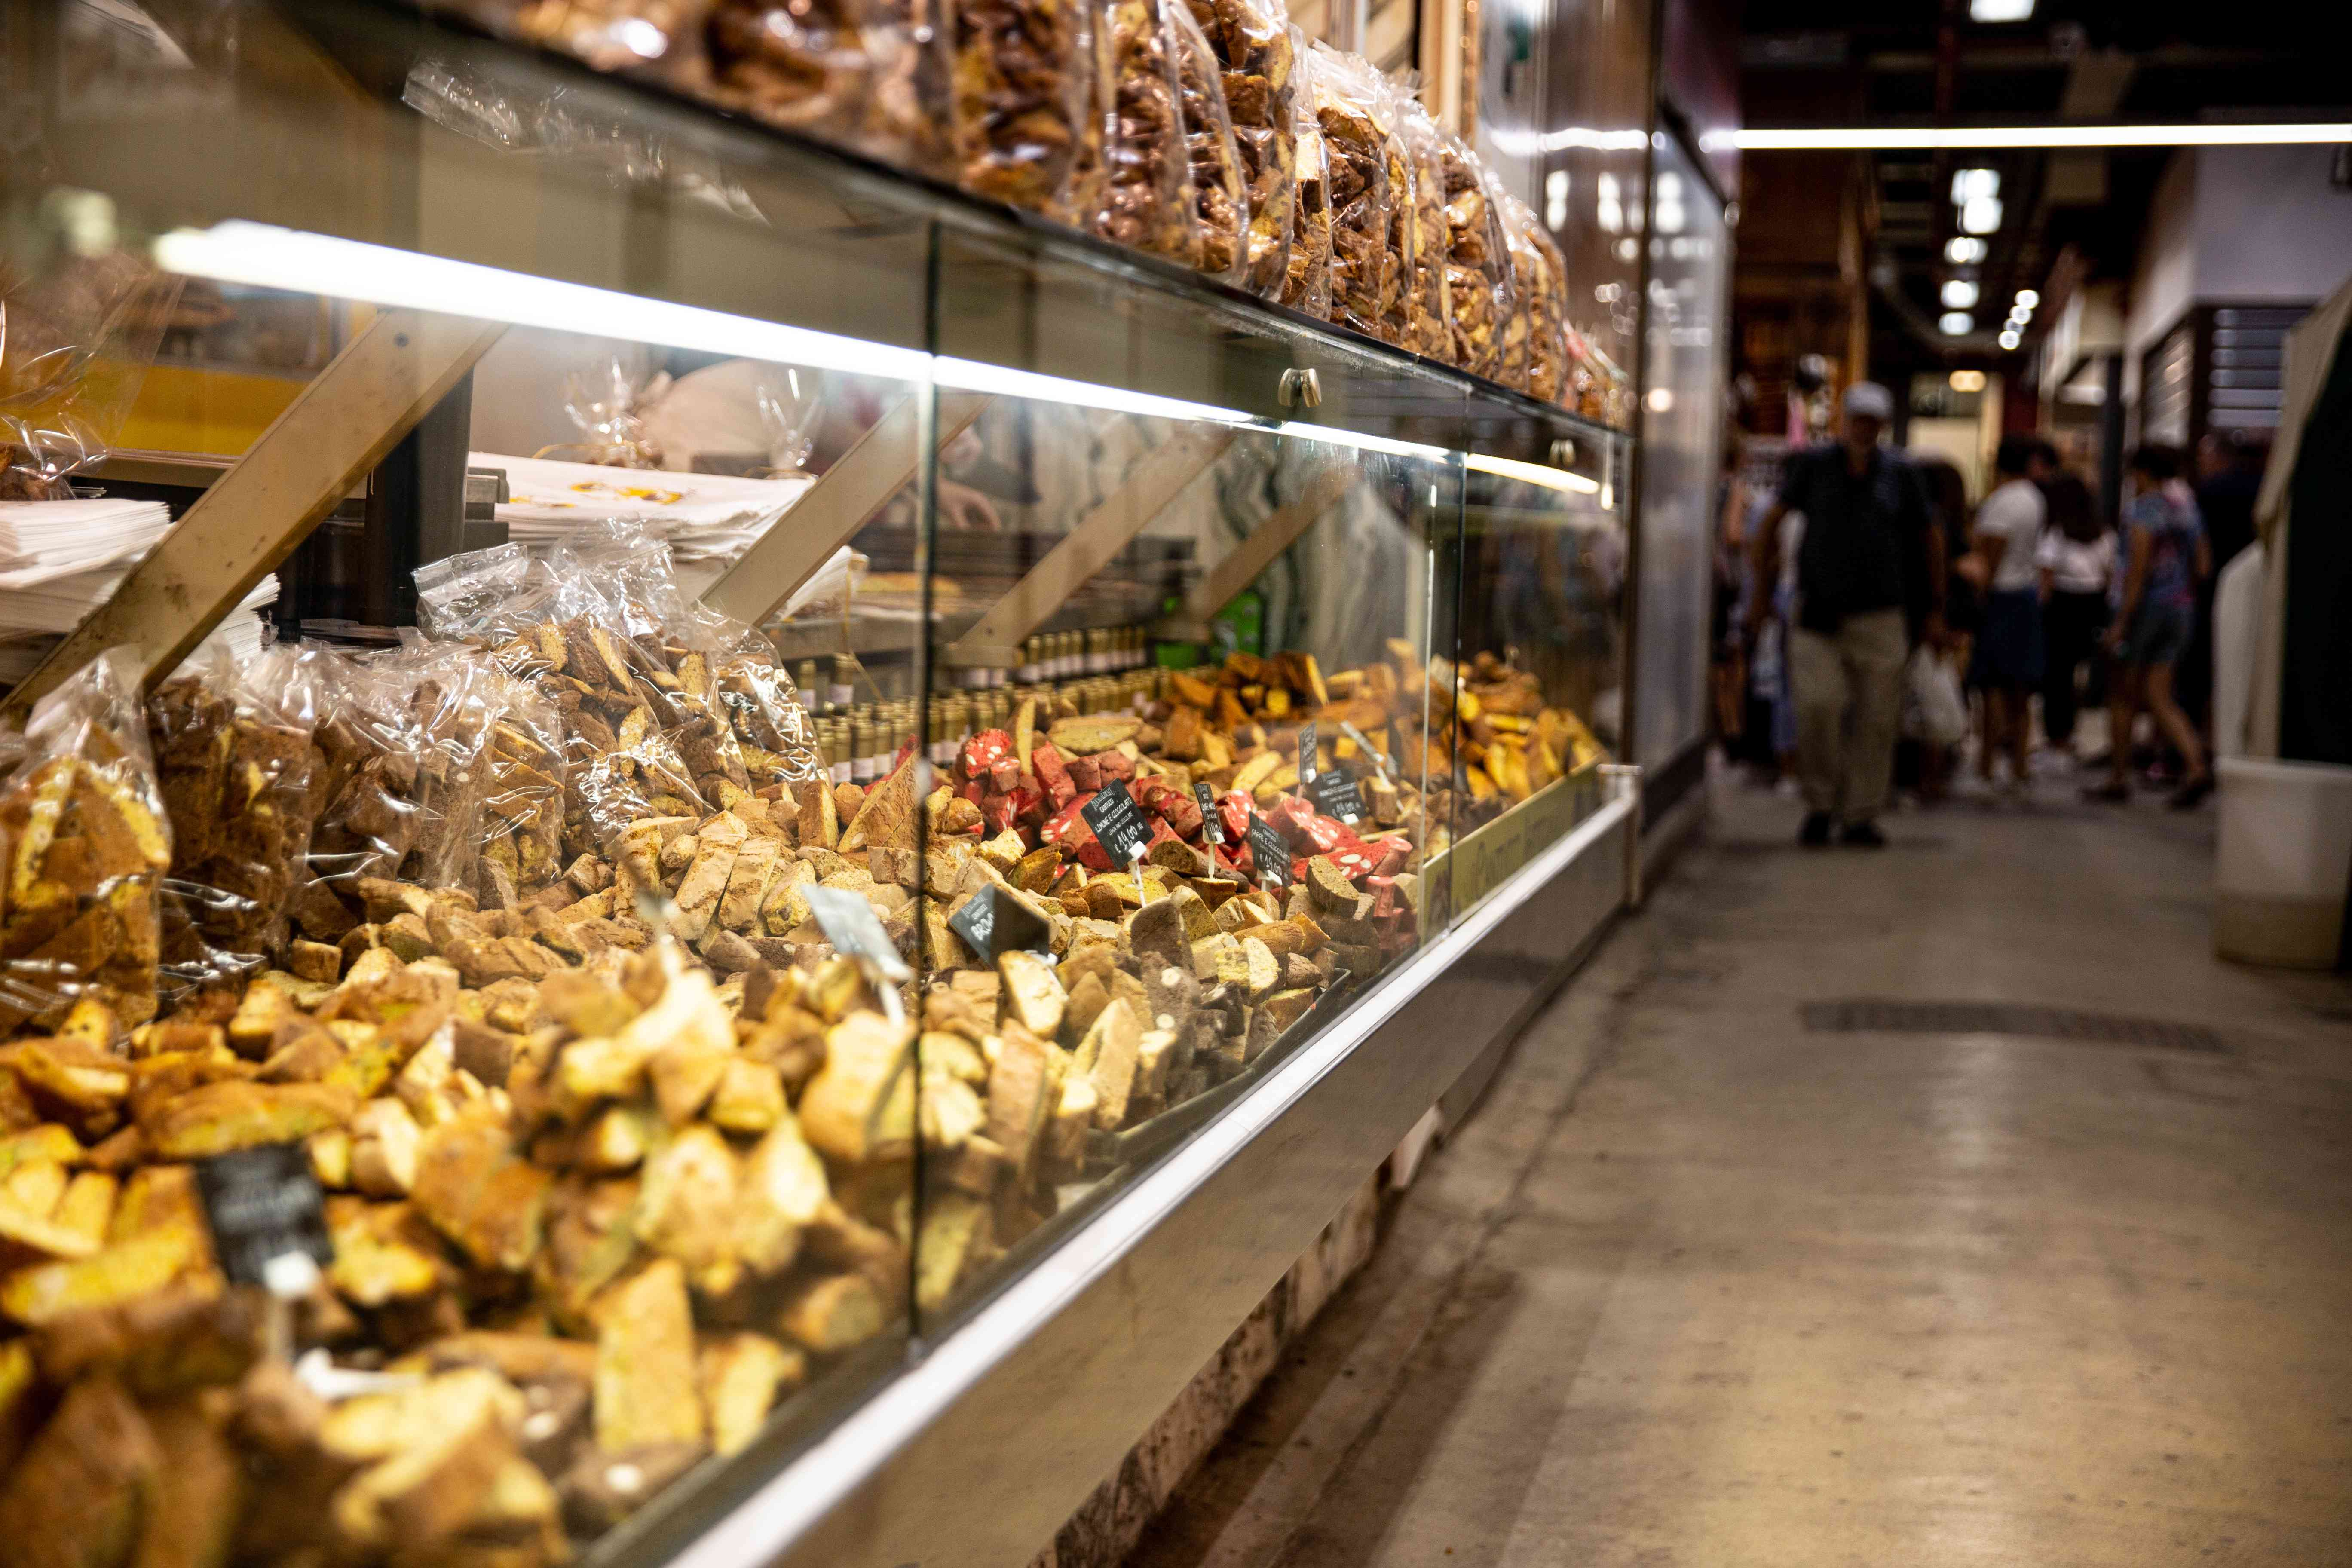 The Mercato Centrale in Florence, Italy